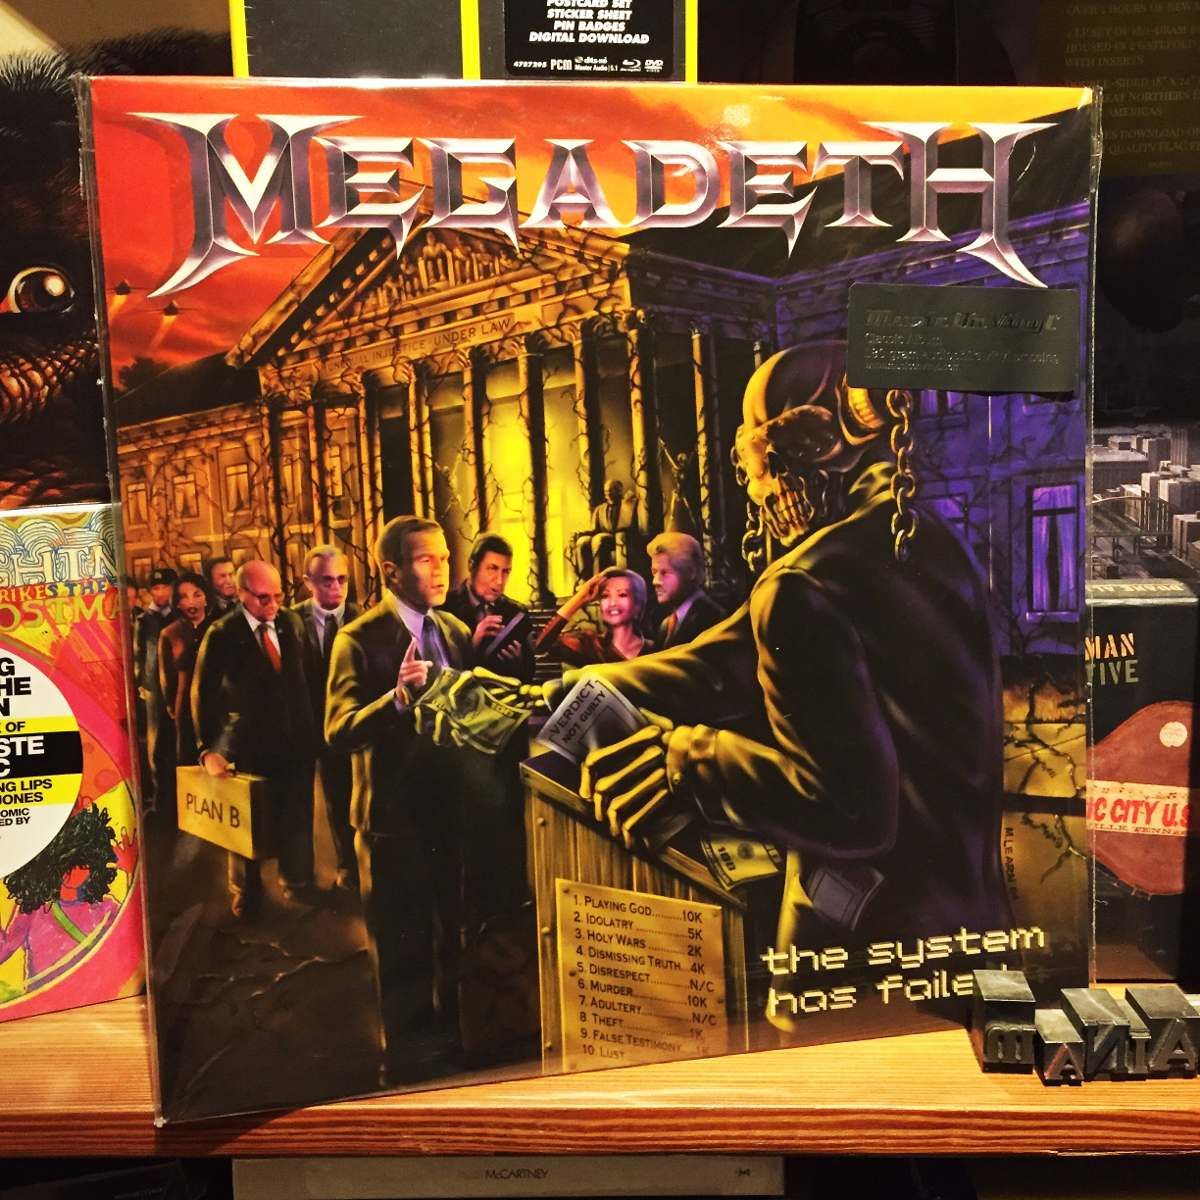 Megadeth the system has failed edicion vinilo cargando zoom jpg 1200x1200  The system has failed 6084028f0ac8b